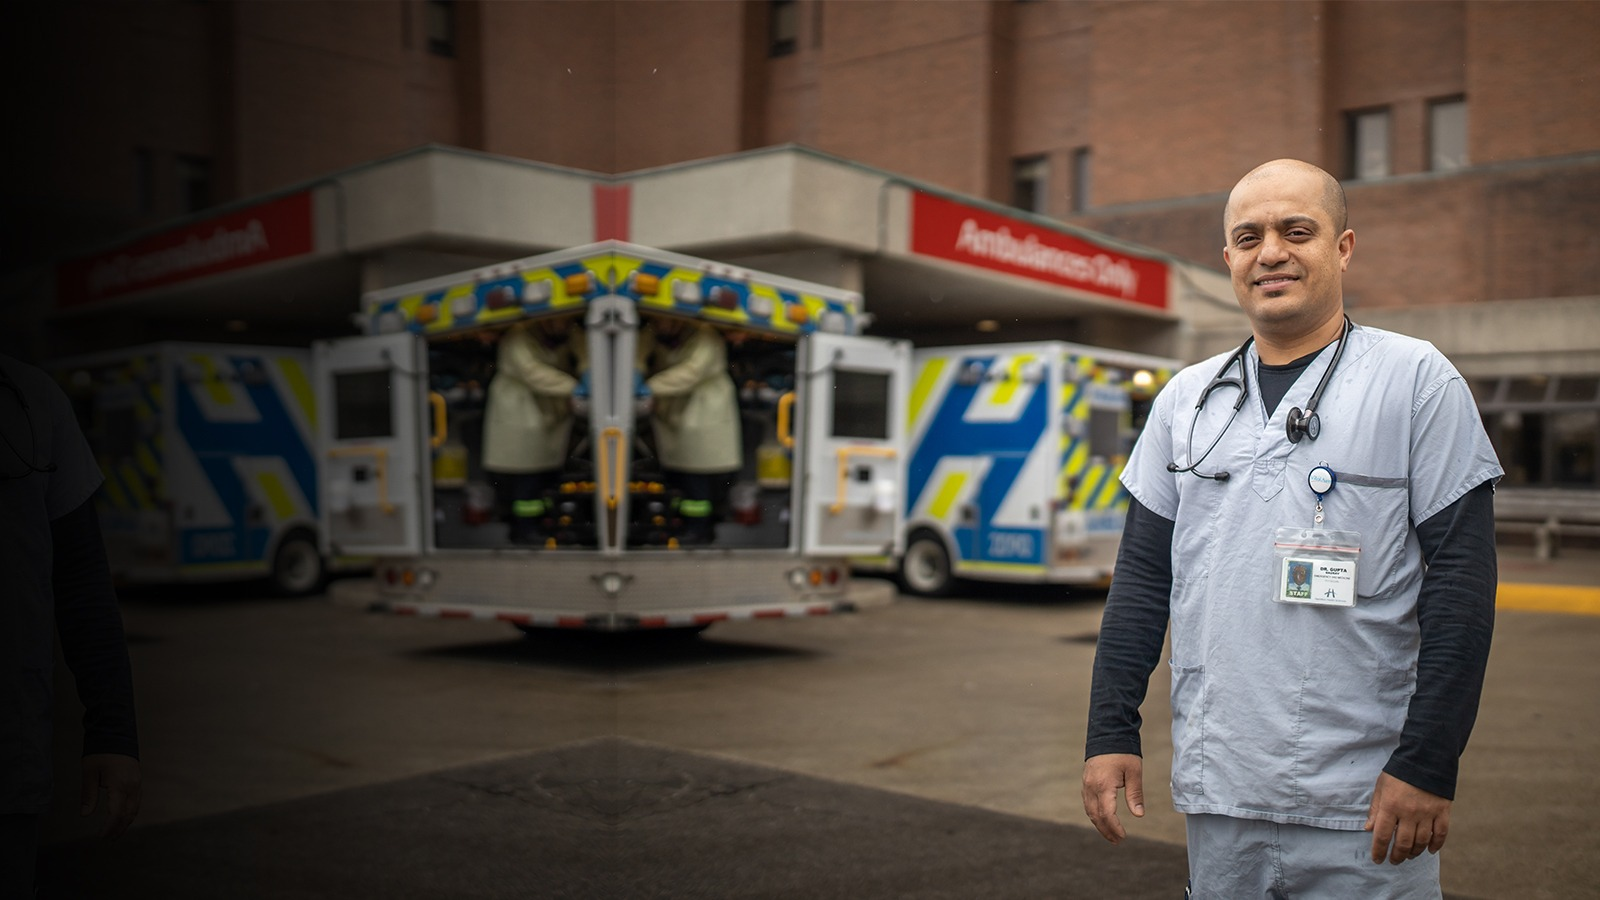 Image of doctor standing in front of the emergency department from the beginning of the COVID-19 pandemic